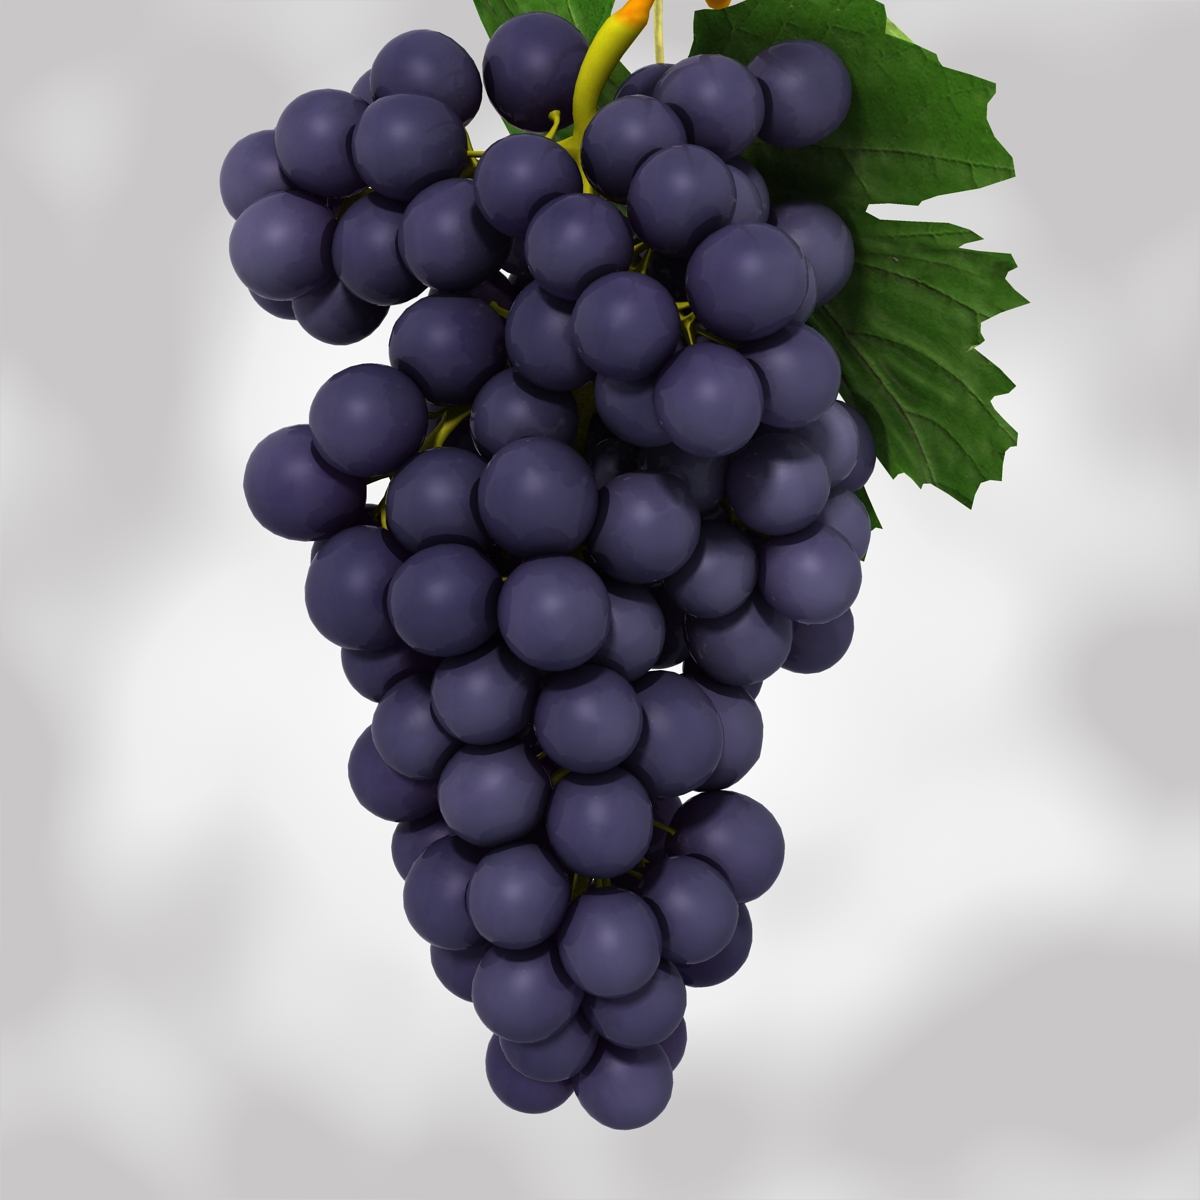 grapes black and blue 3d model 3ds max fbx c4d obj 204272